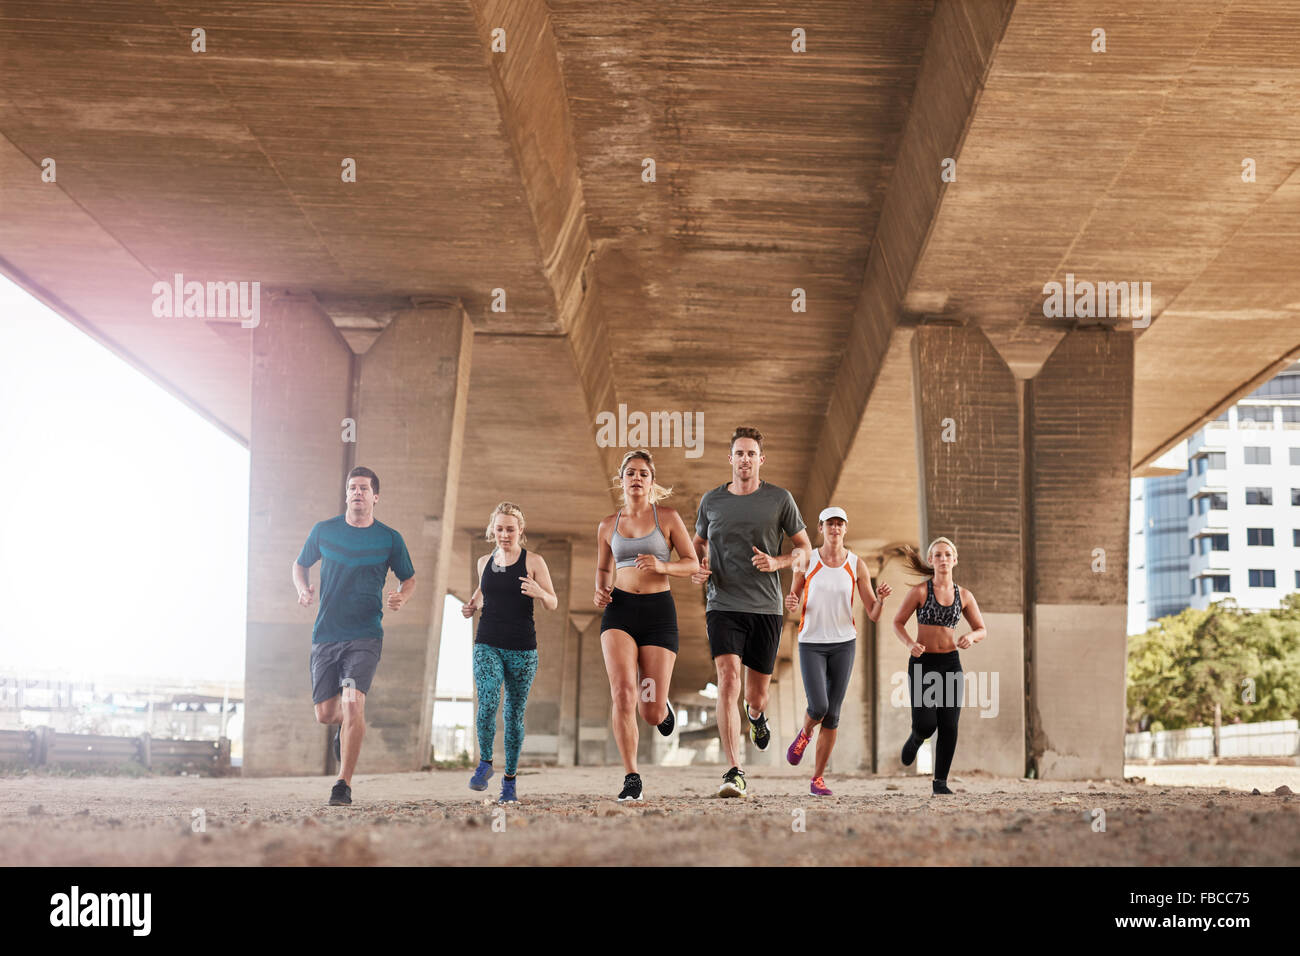 Group of healthy people running under a bridge. They are running in the city wearing sport clothing. - Stock Image